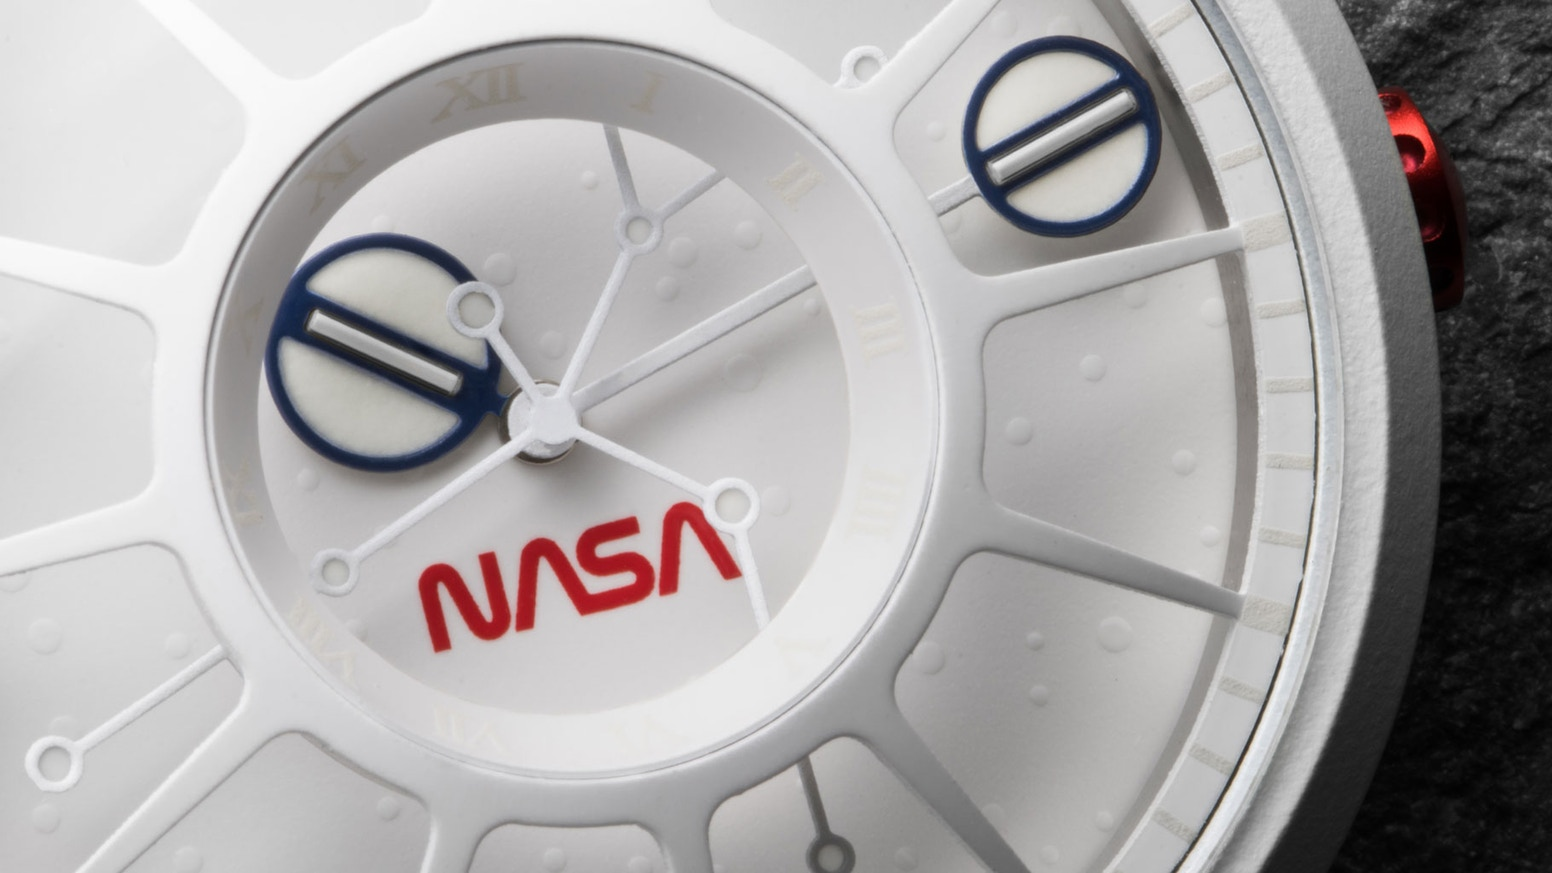 A glowing solar system on your wrist! A collection of watches to celebrate the 50th anniversary of the NASA Apollo 11 moon landing.